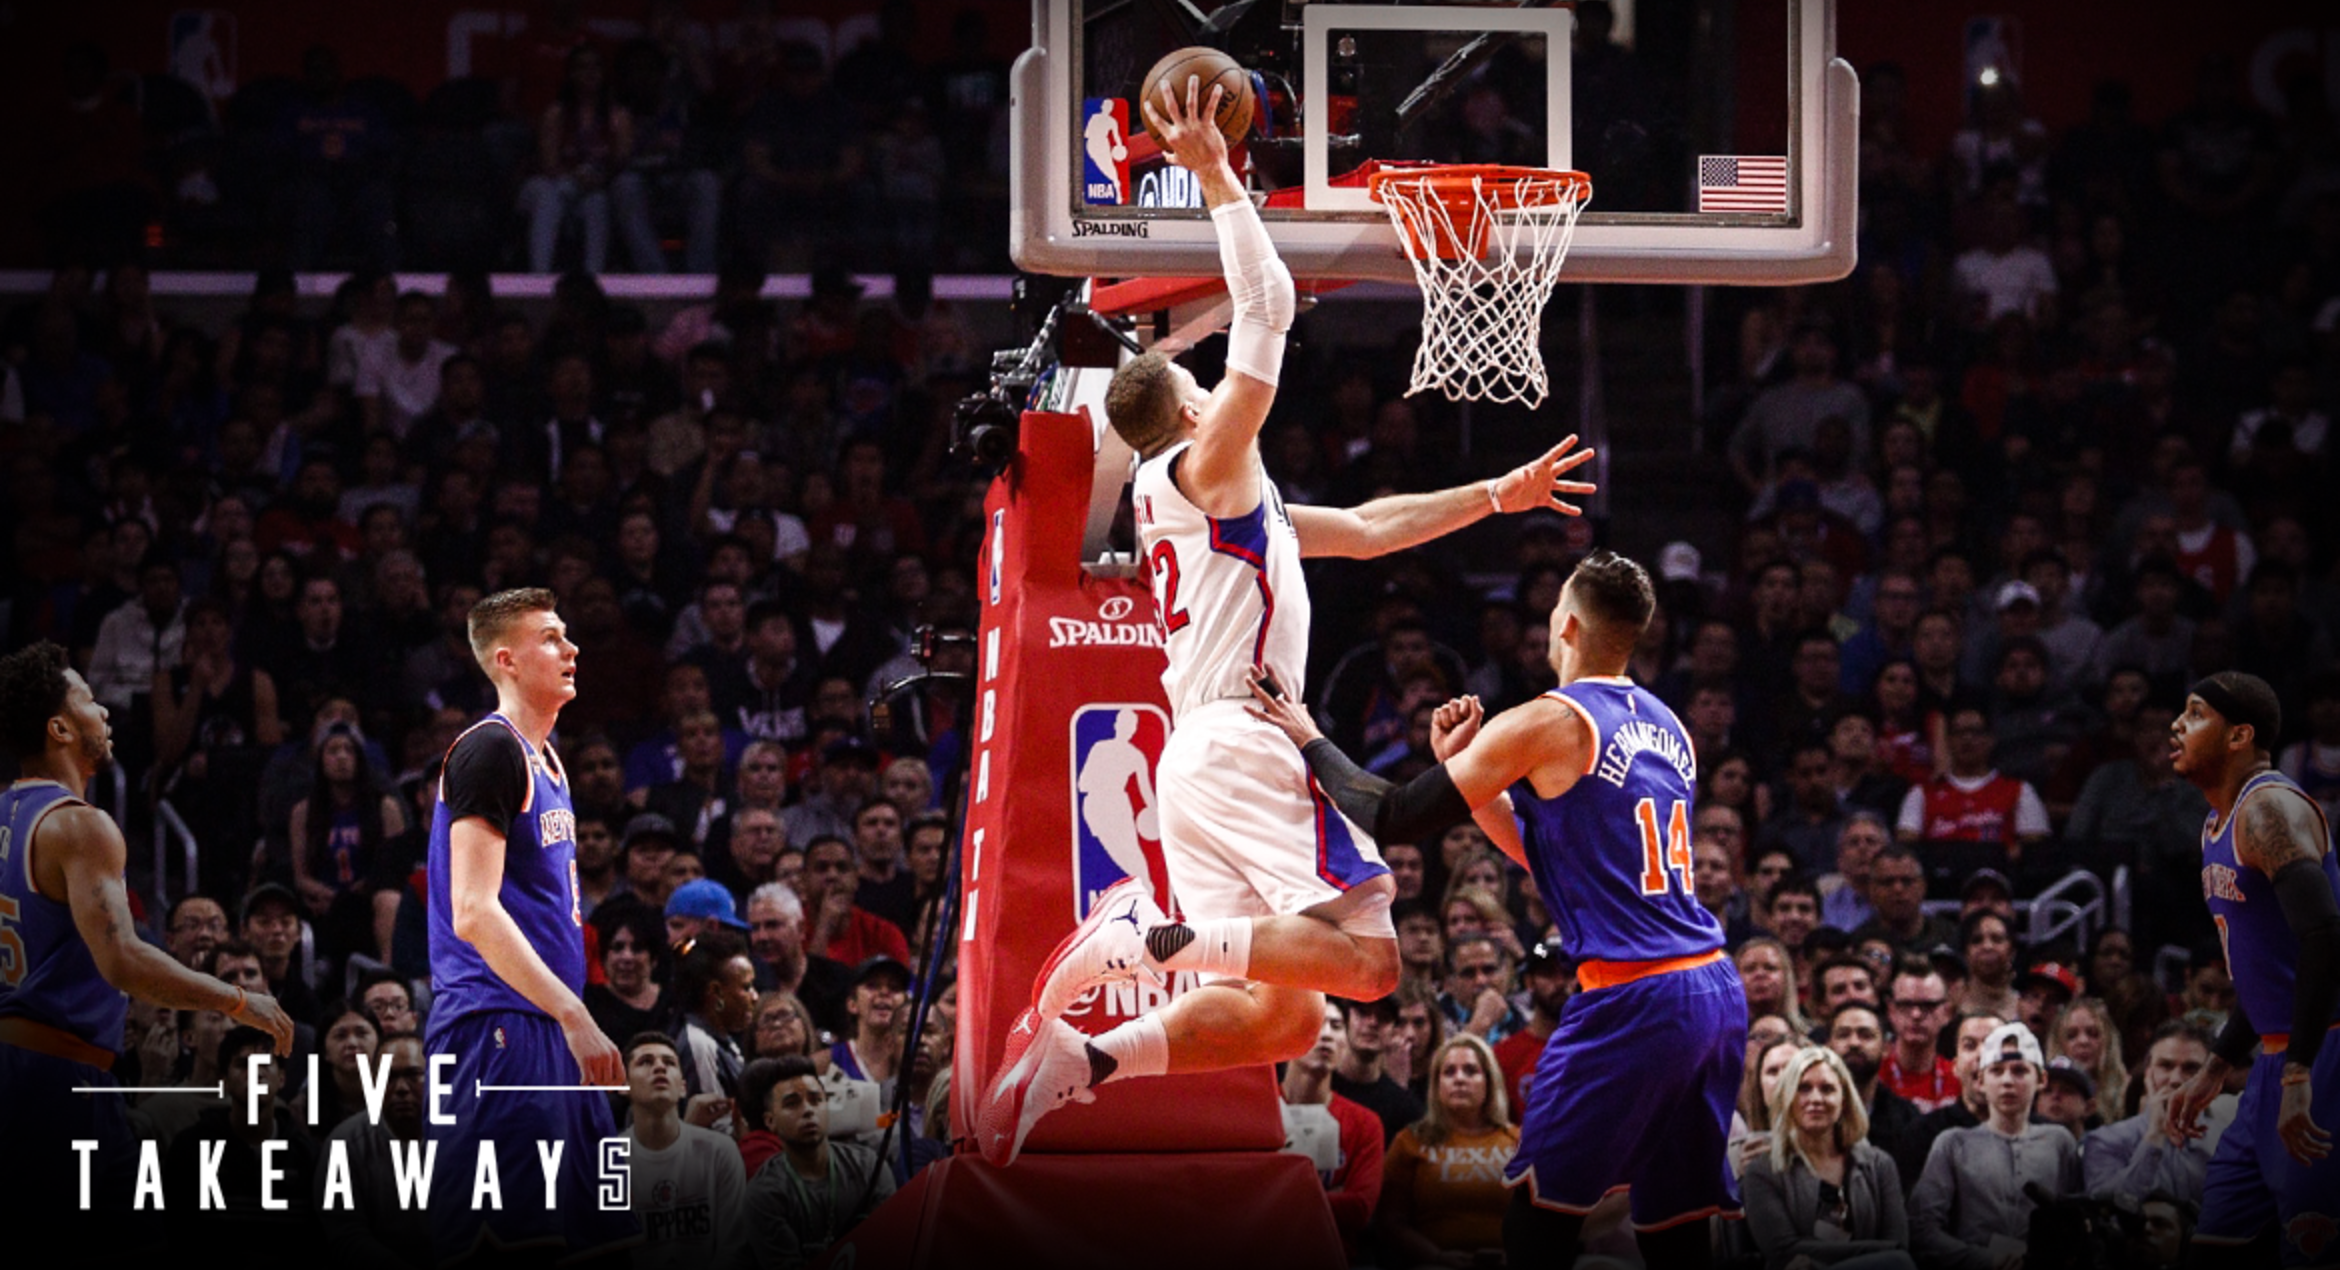 Five Takeaways: From the Clippers' Commanding Win Over the New York Knicks